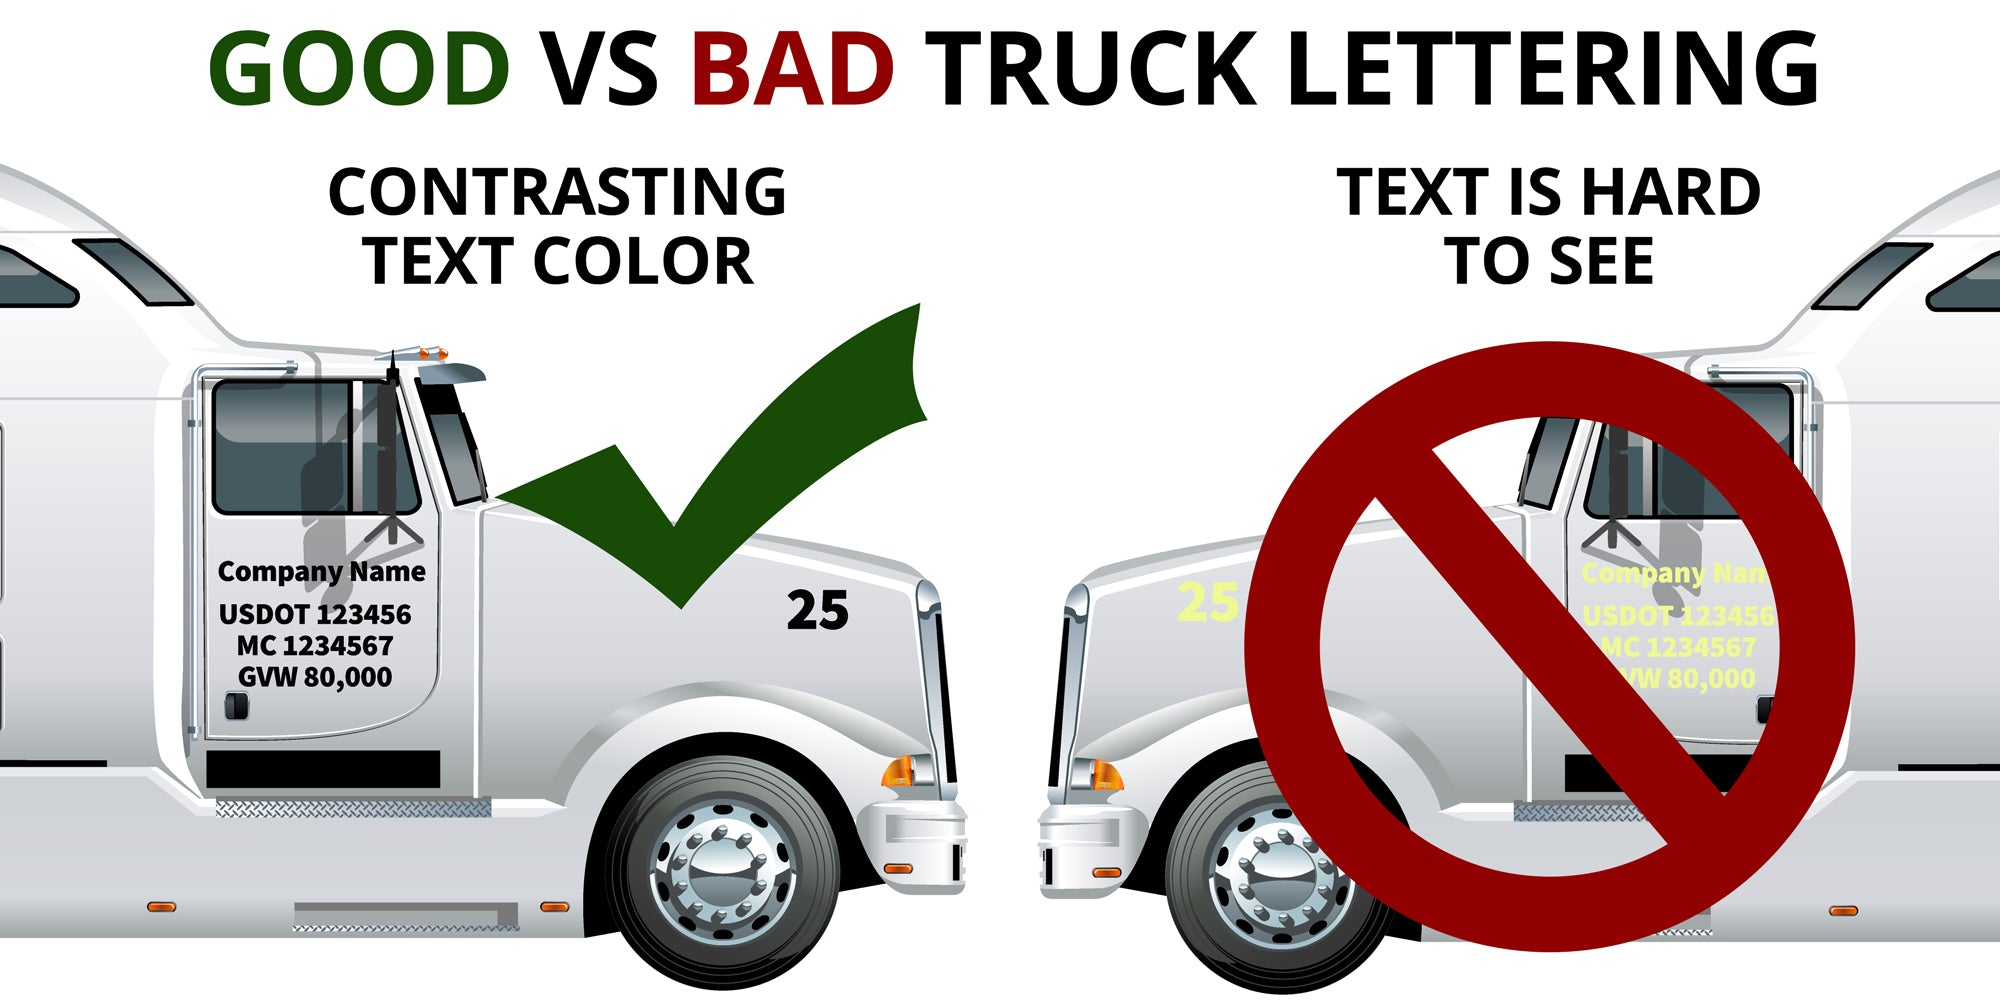 good vs bad truck lettering example